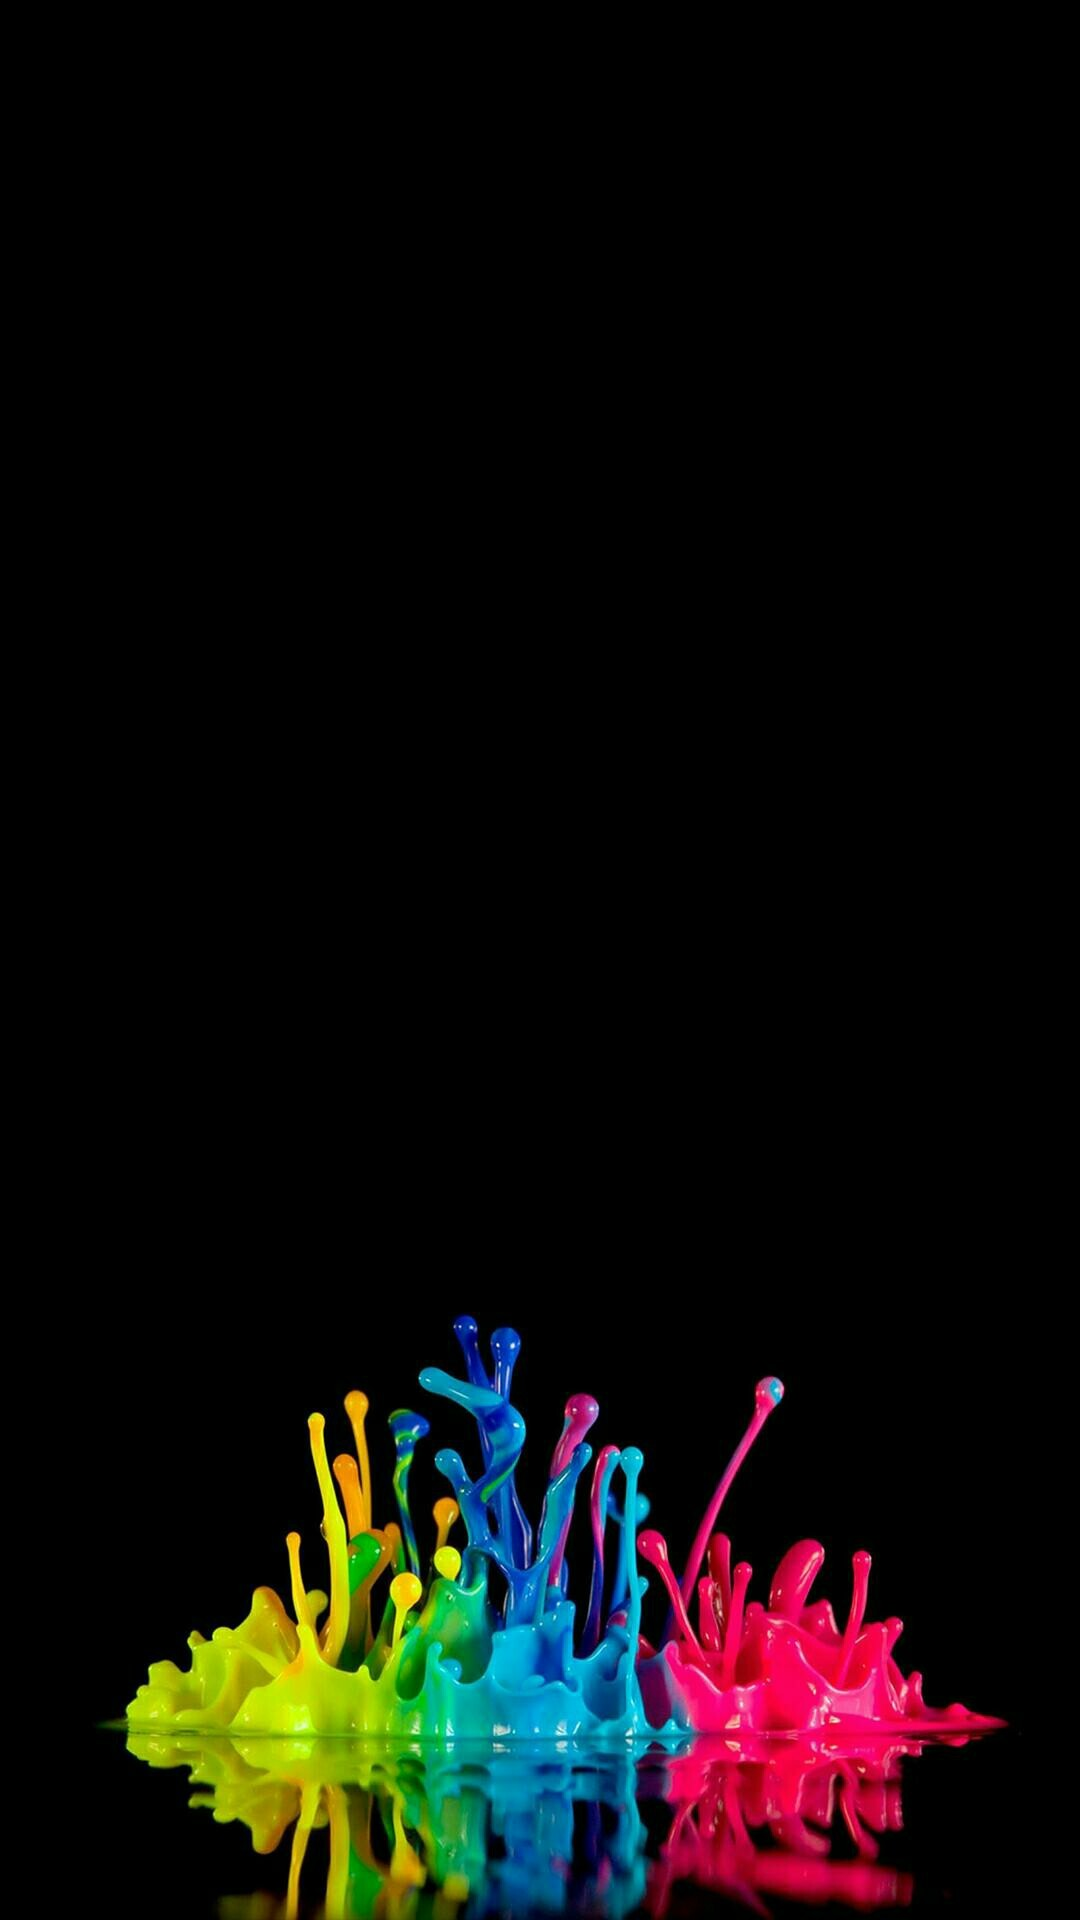 1080x1920 Explore Neon Colors, Water Colors, and more!